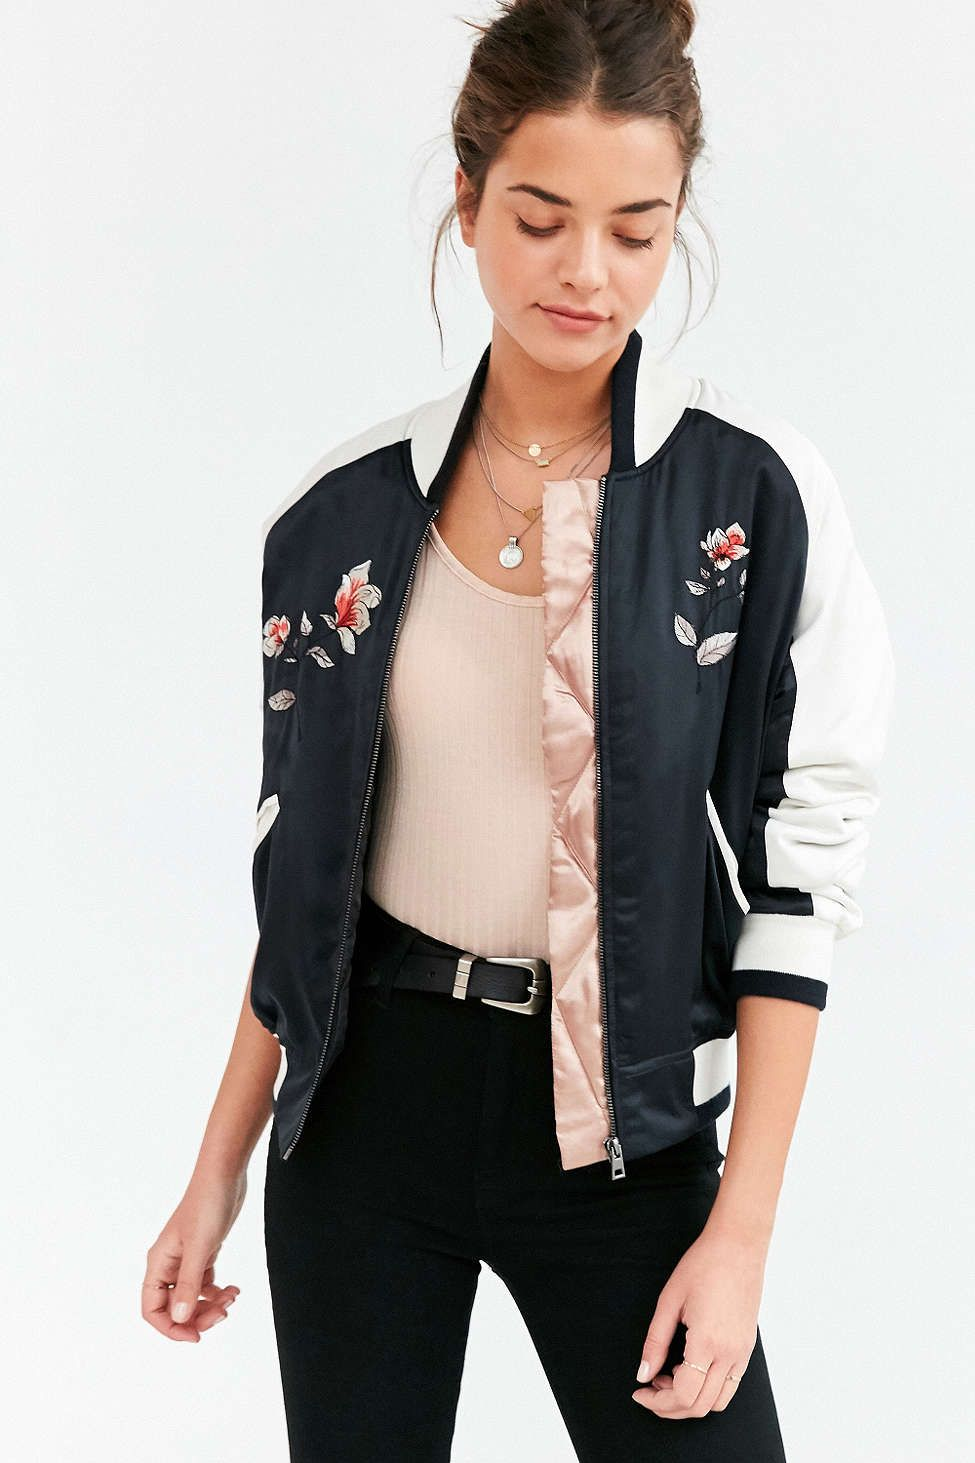 Image 1 of New Look Bomber Jacket | * Wear * | Pinterest | Black ...